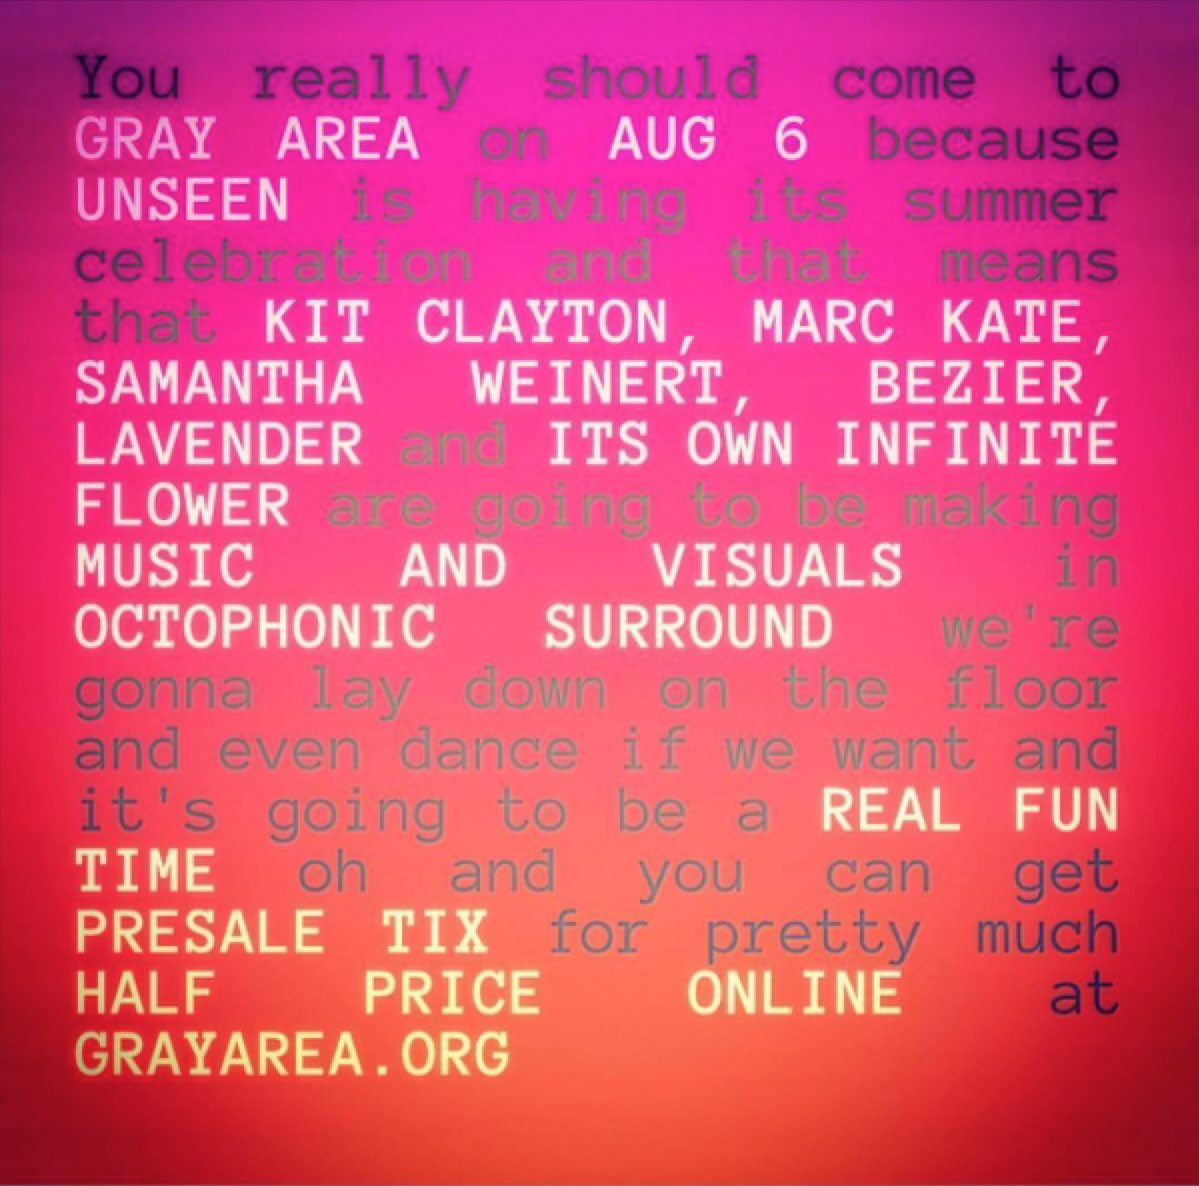 gray-area-august-6-flyer